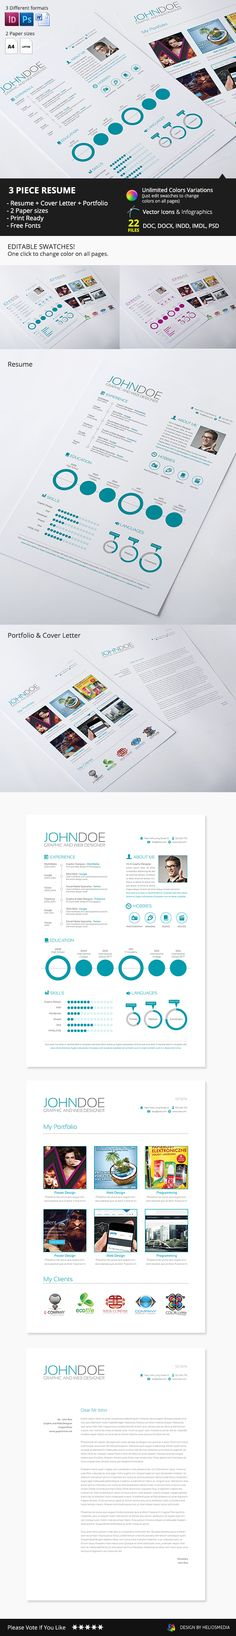 3-Piece Modern Resume by Rafał Kozera, via Behance ㅡ 디자이너의 이력서 :)